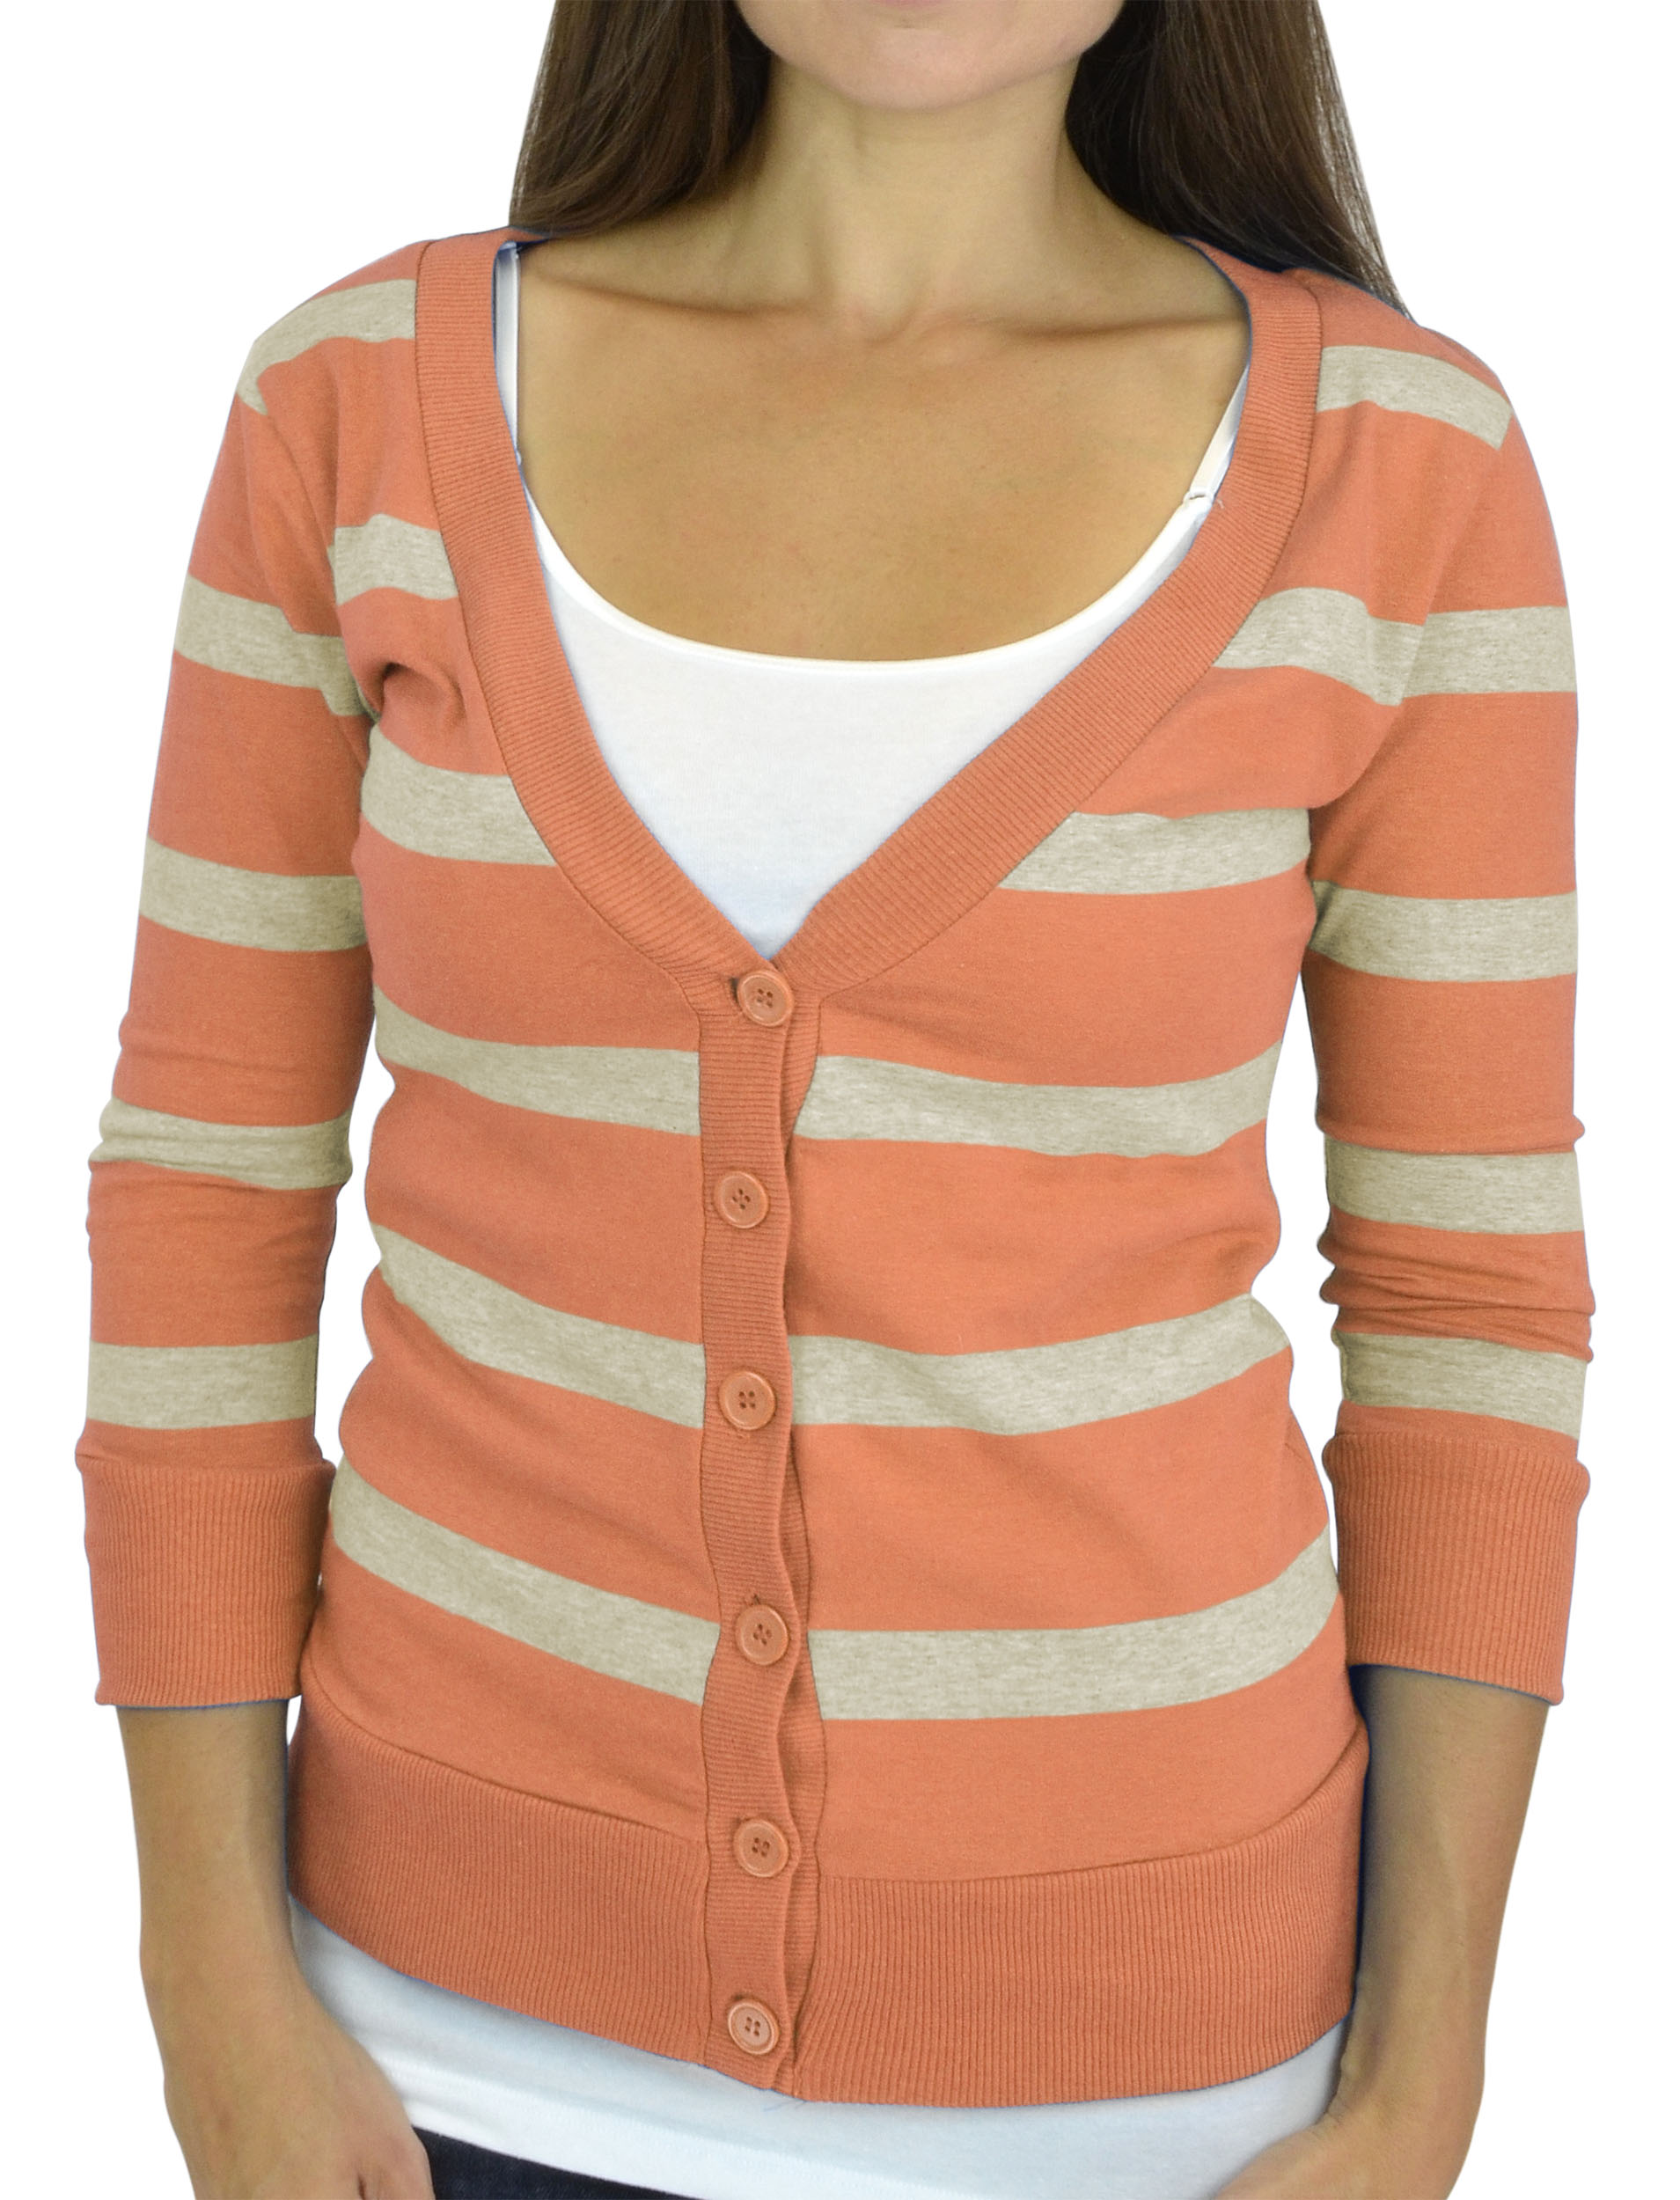 Belle Donne - Women / Girl Junior Size Soft 3/4 Sleeve V-Neck Sweater Cardigans - Peach/Small